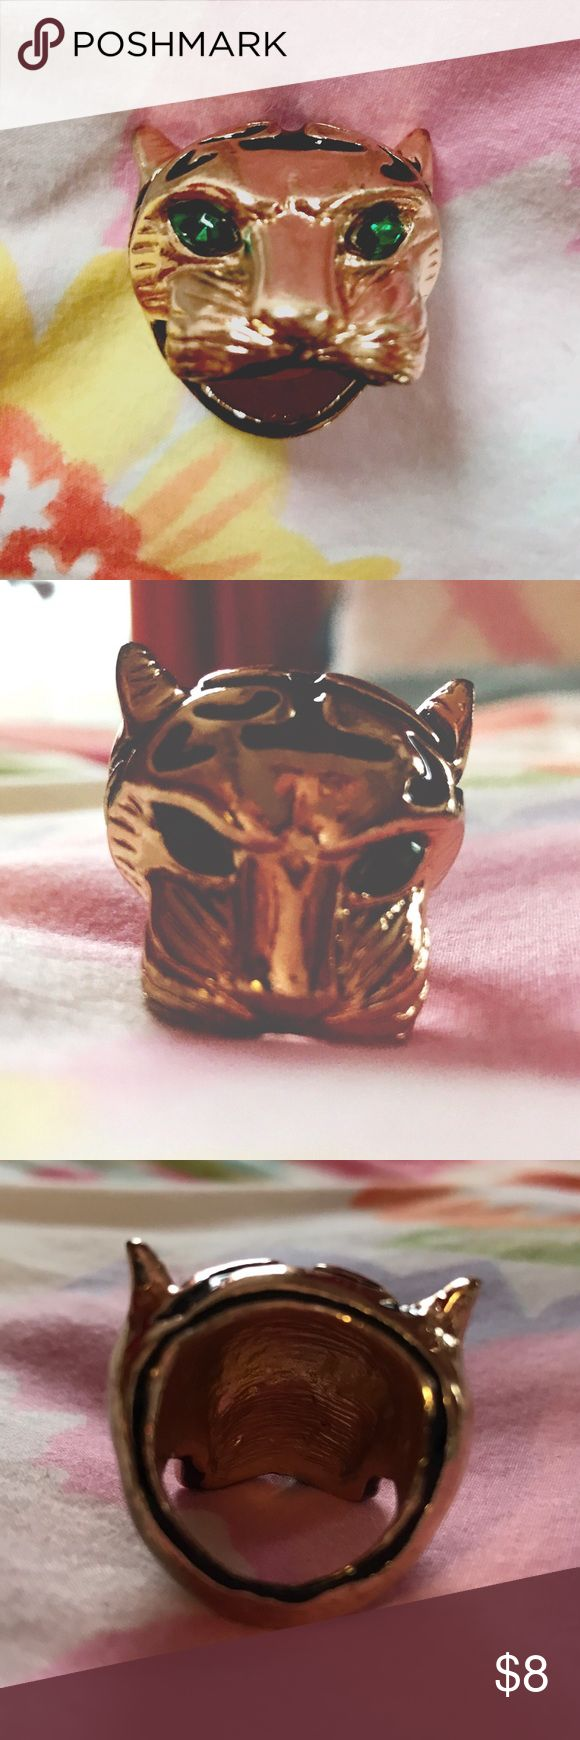 """Tiger ring🐯 This gold, black and green-eyed tiger ring is a little heavy, but will be worth the """"weight!"""" Jewelry Rings"""